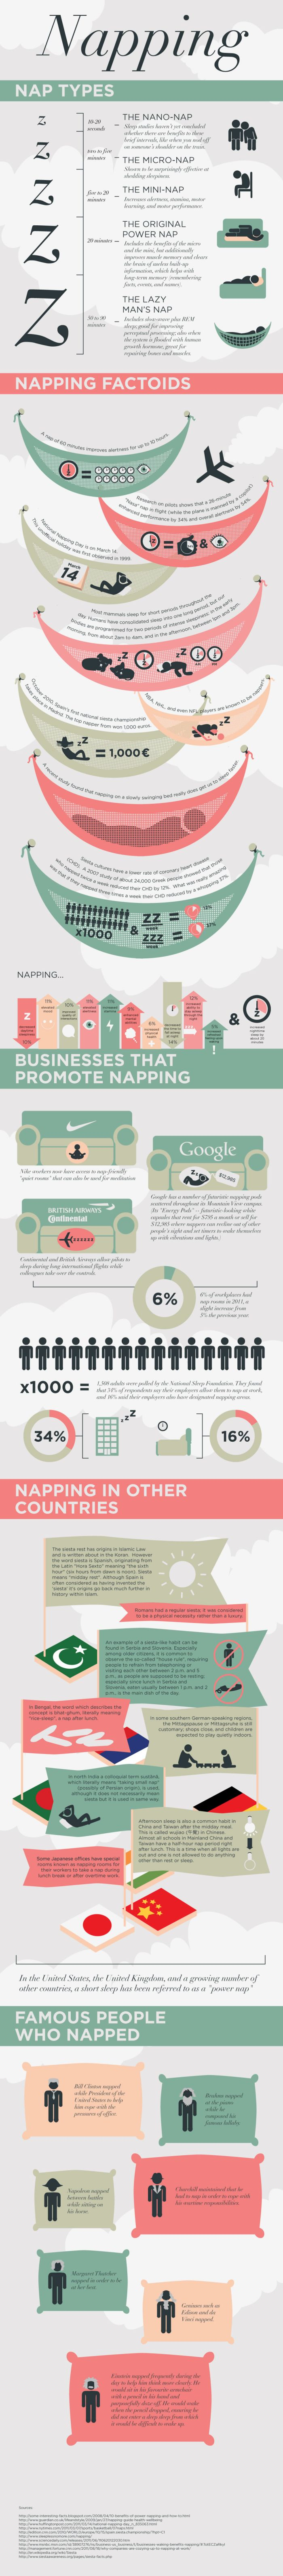 Facts about Napping (infographic)